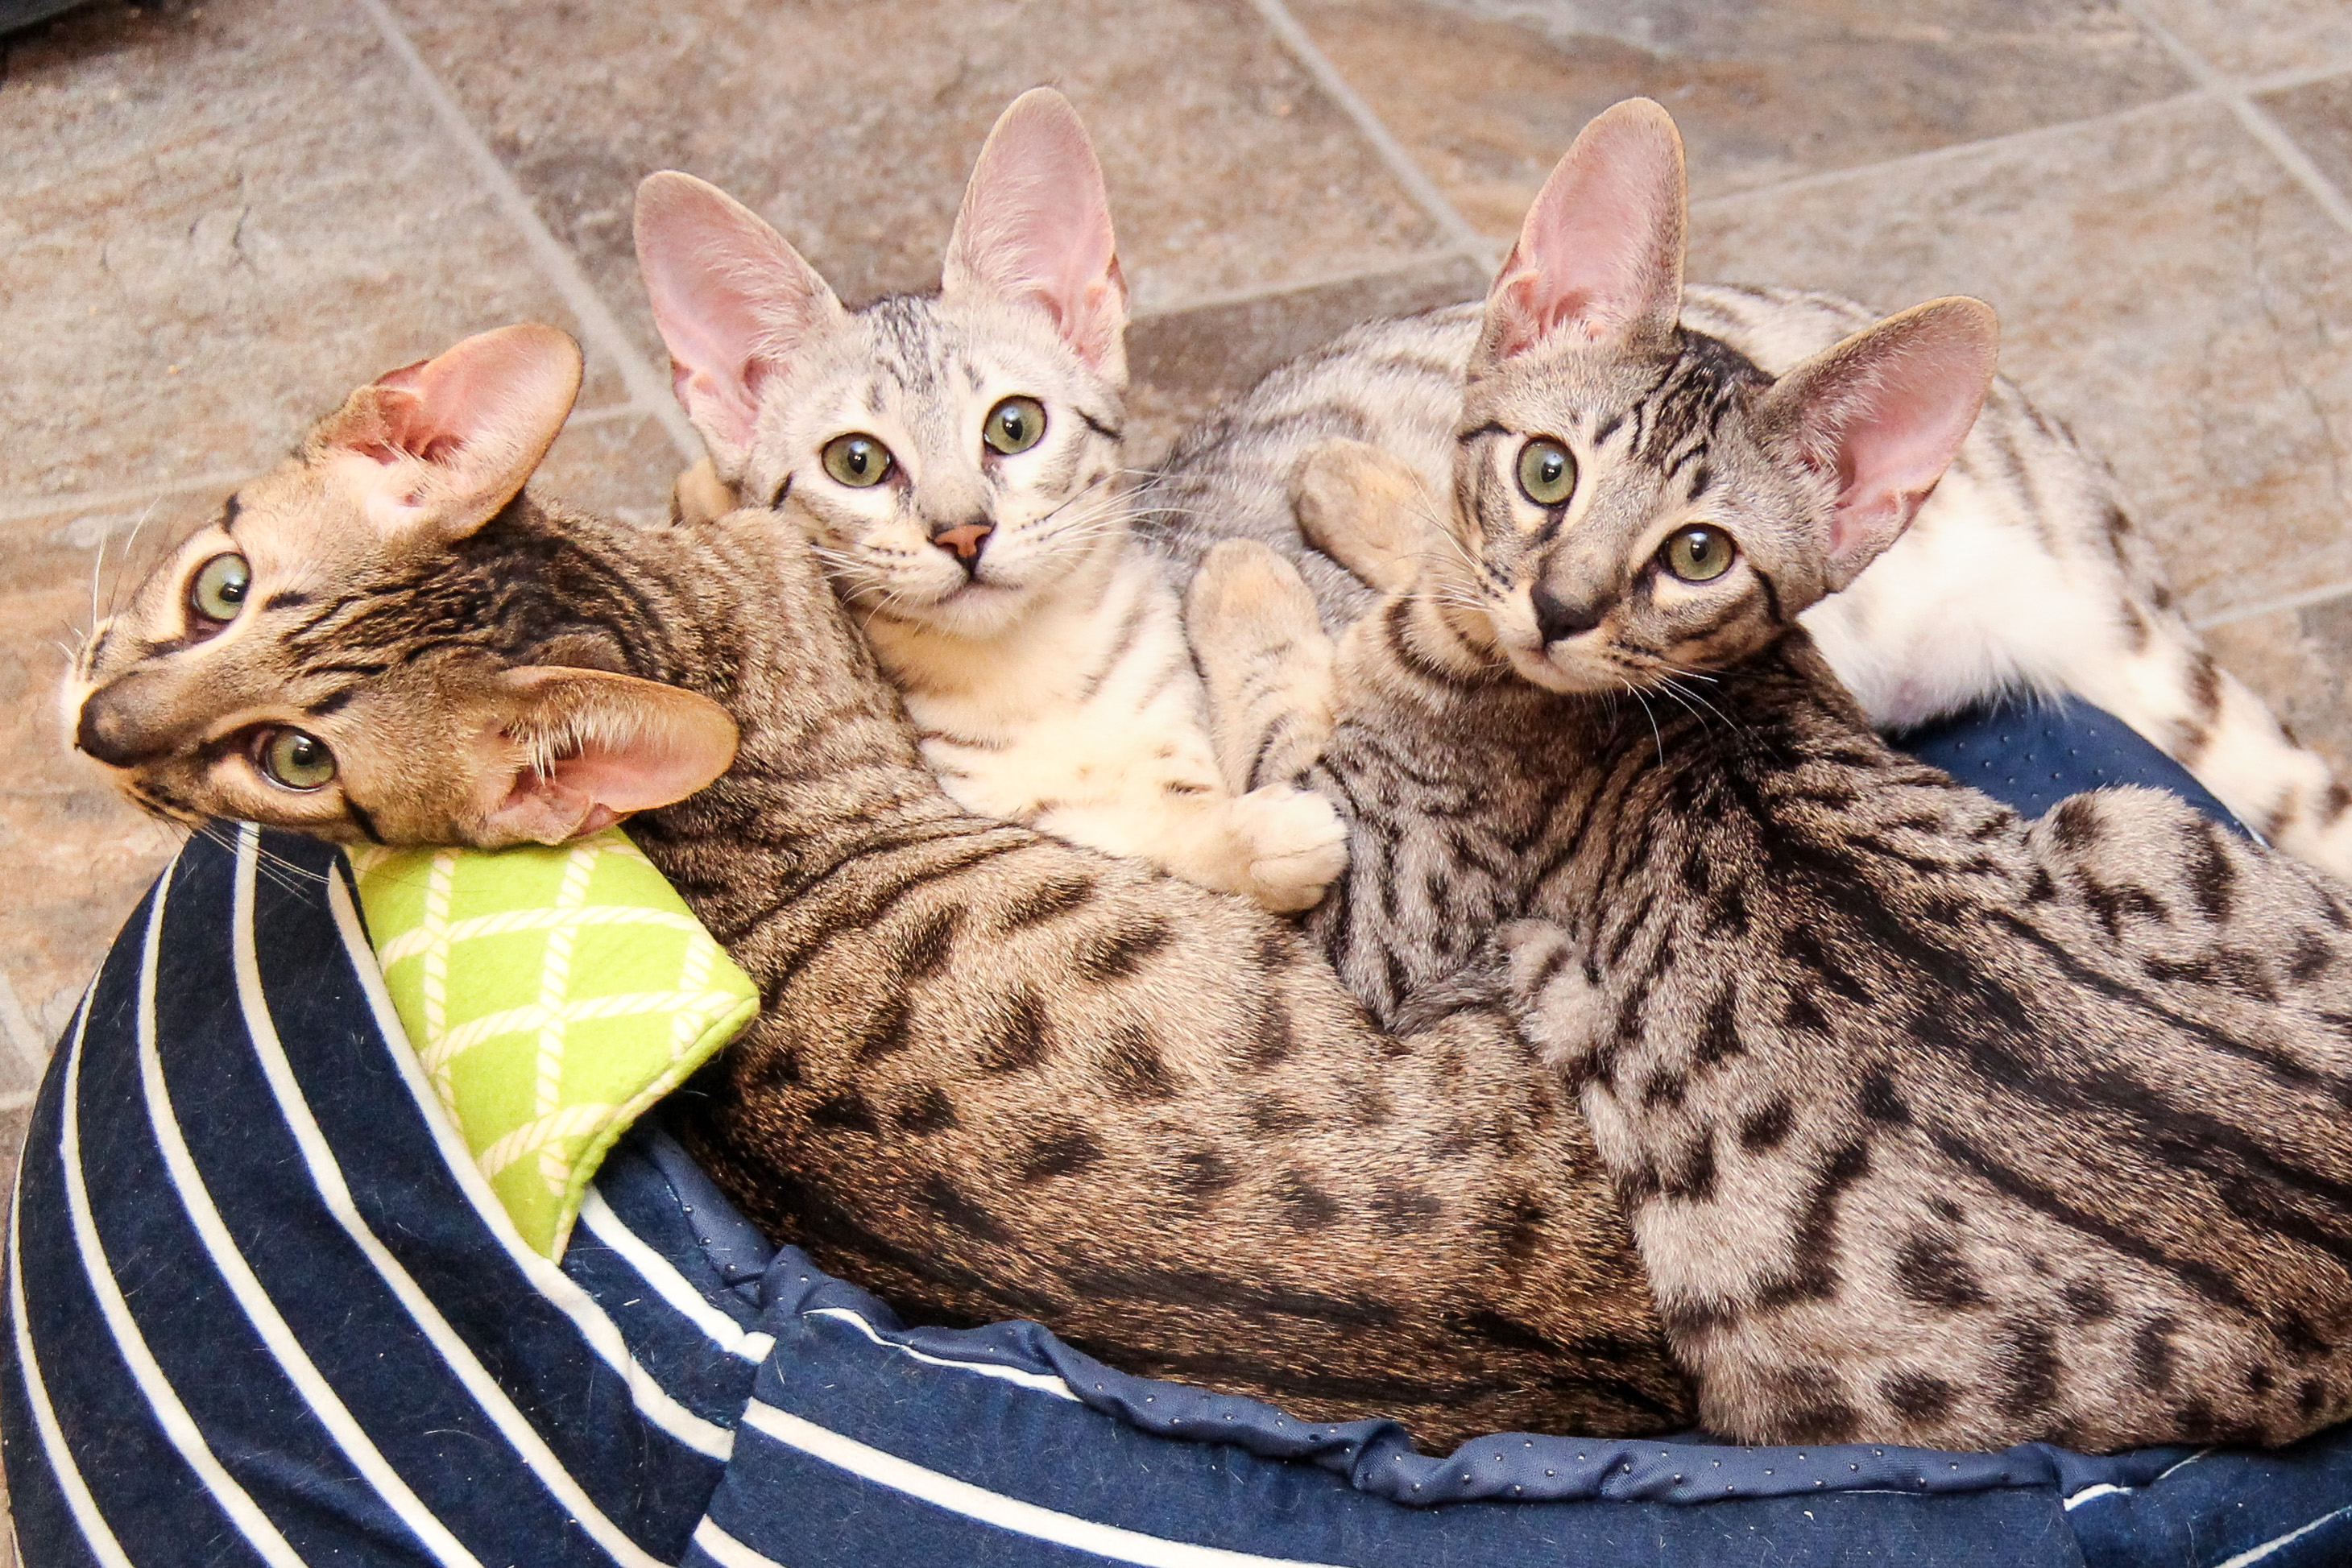 Savvy Paws Savannah Cats | Savannah Kittens in Ontario, Canada